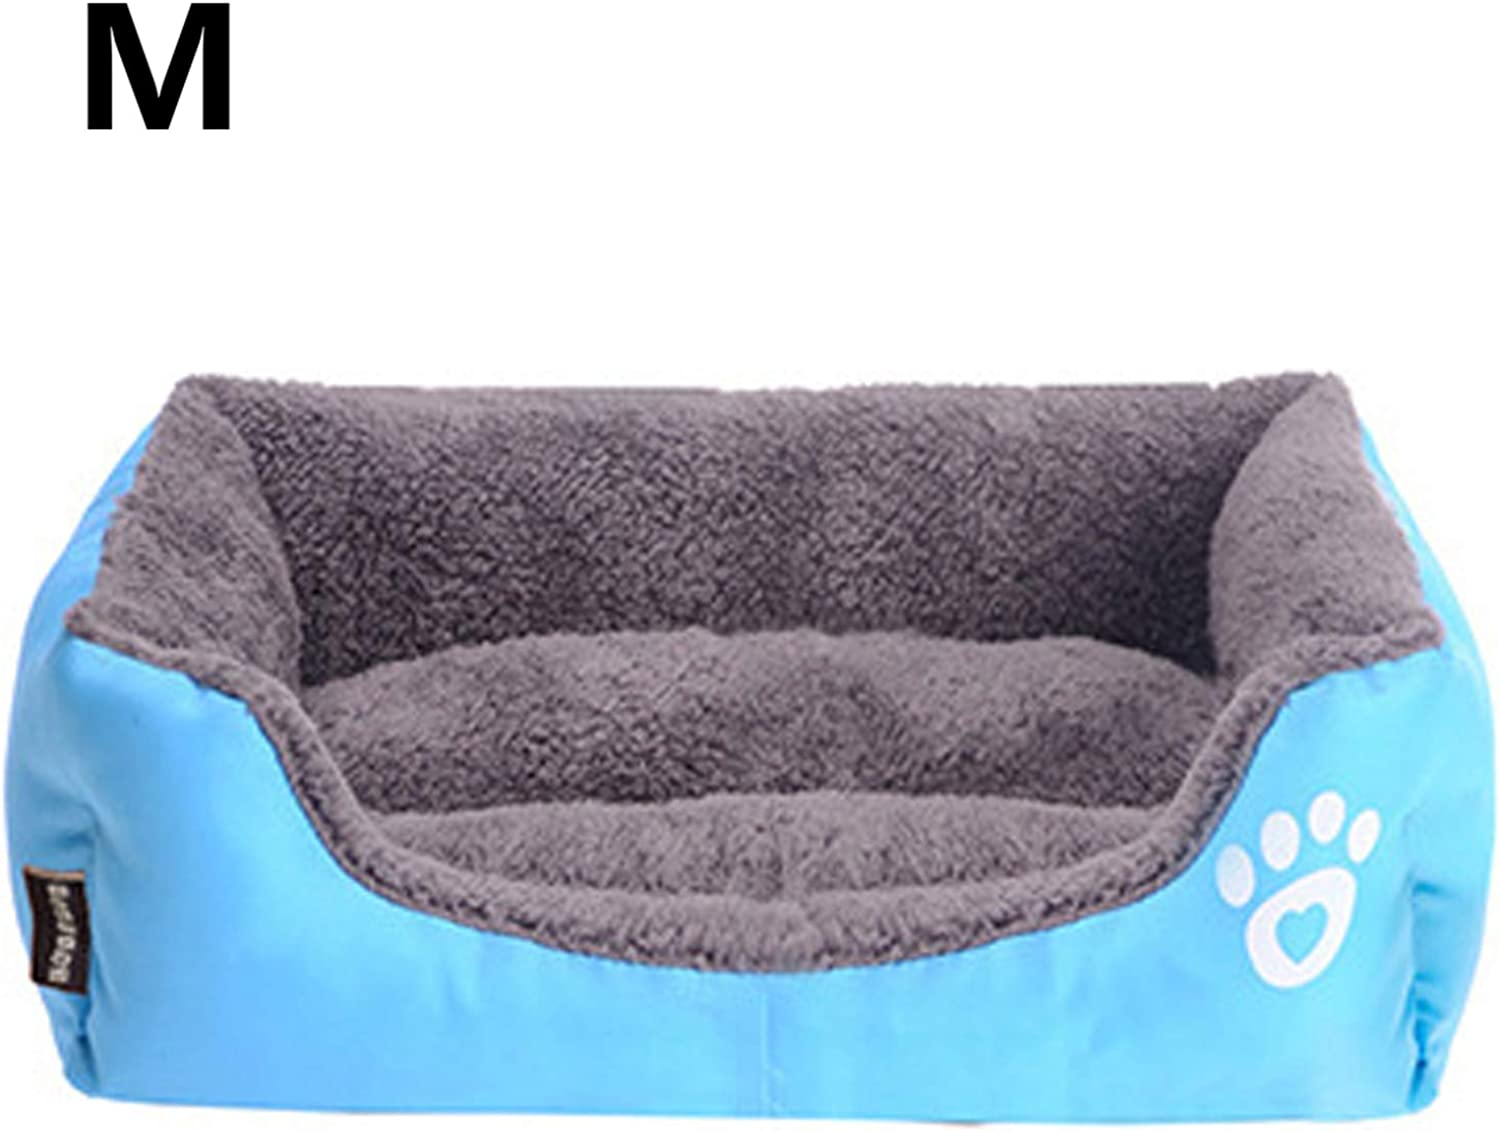 PETFDH Pet Sofa Dog Bed Warming Dog House Soft Material Nest Dog Baskets Fall and Winter Warm Kennel for Cat Puppy bluee 58X45X14cm